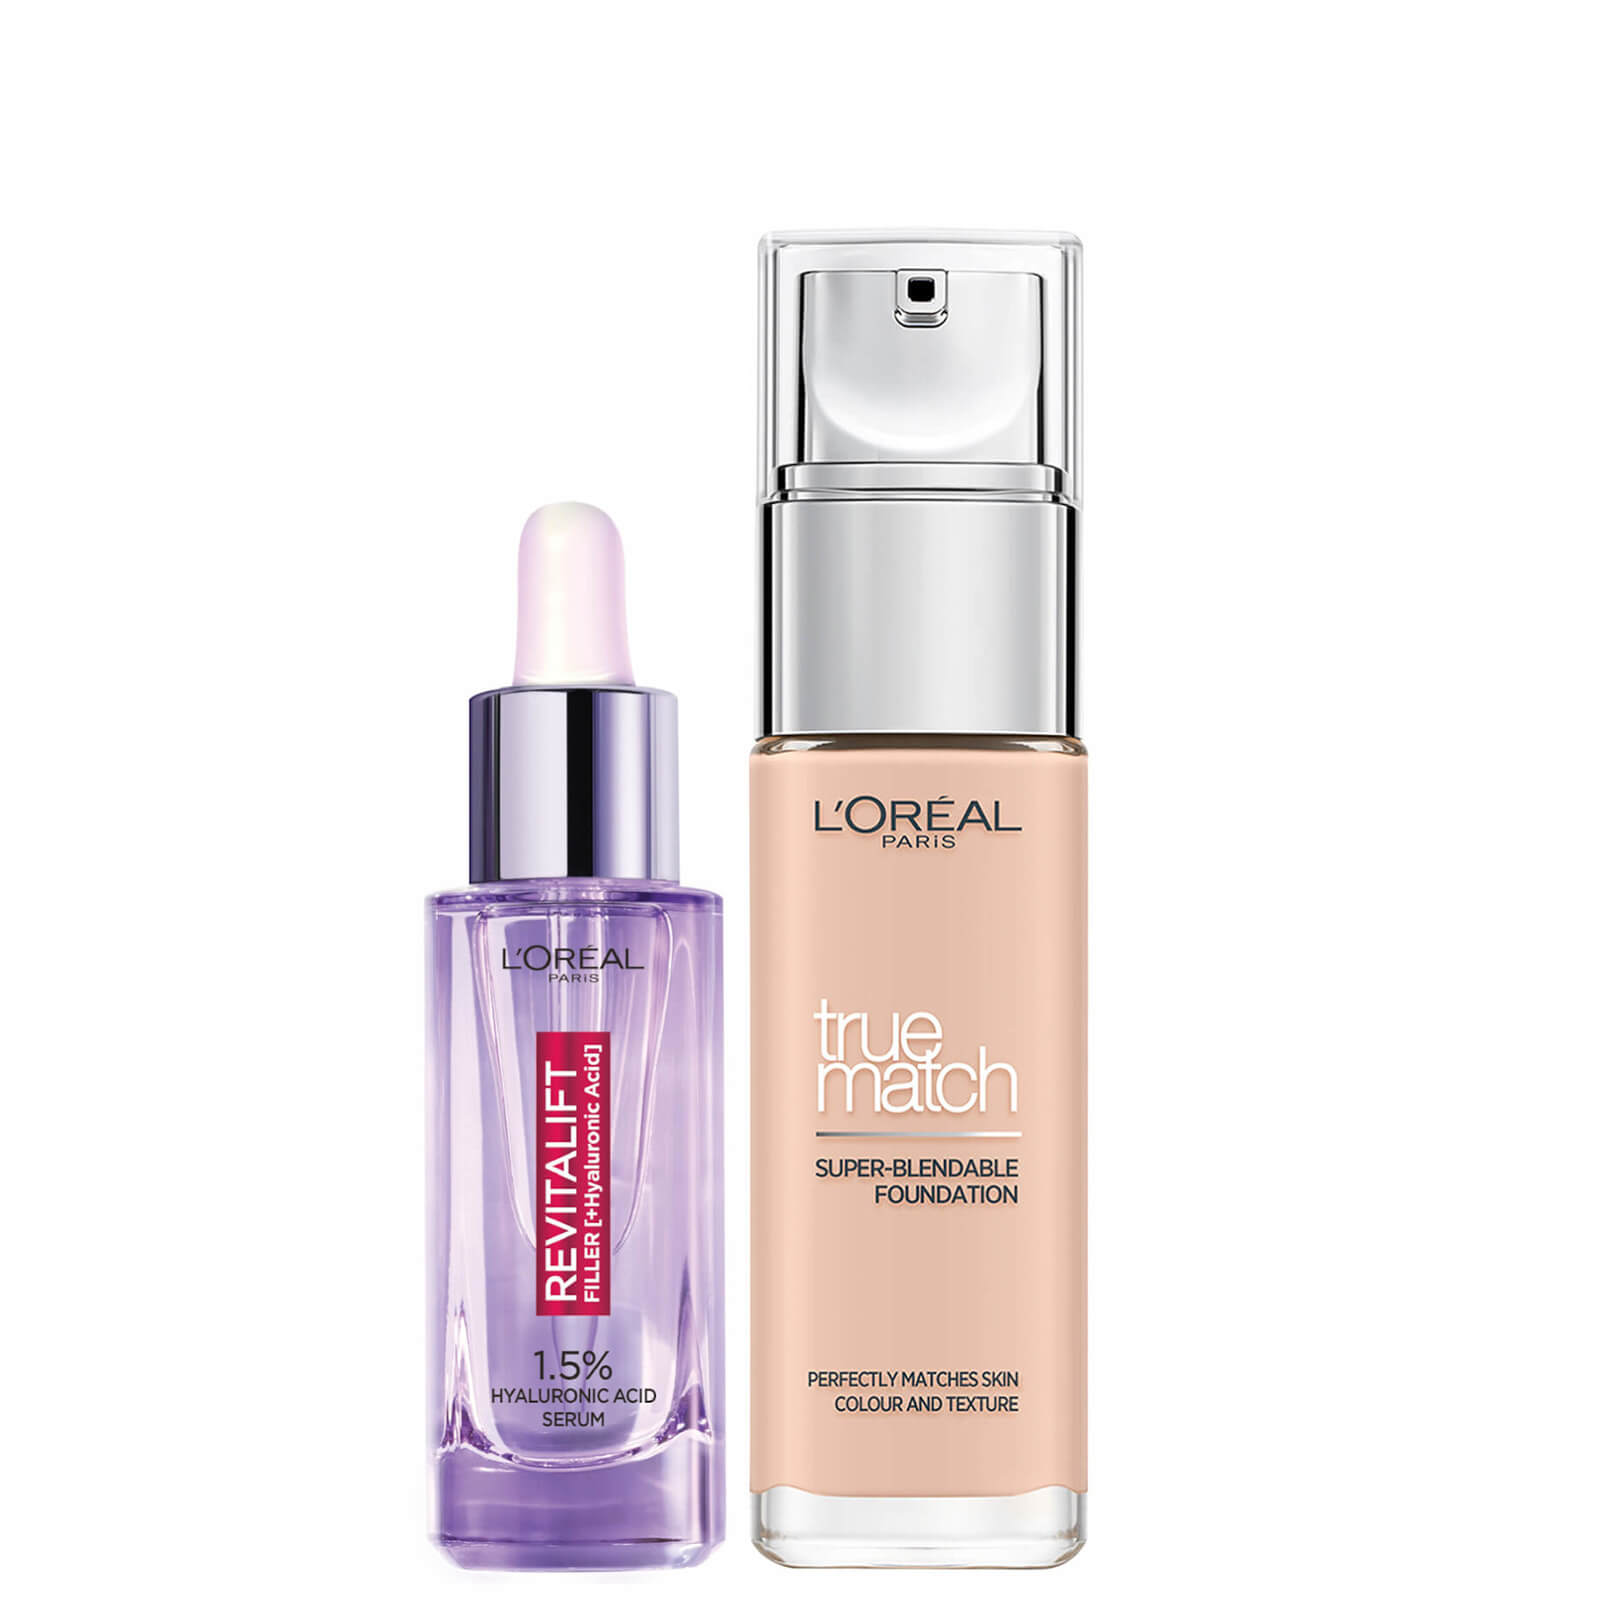 L'Oreal Paris Hyaluronic Acid Filler Serum and True Match Hyaluronic Acid Foundation Duo (Various Shades) - 0.5C Porcelain Rose